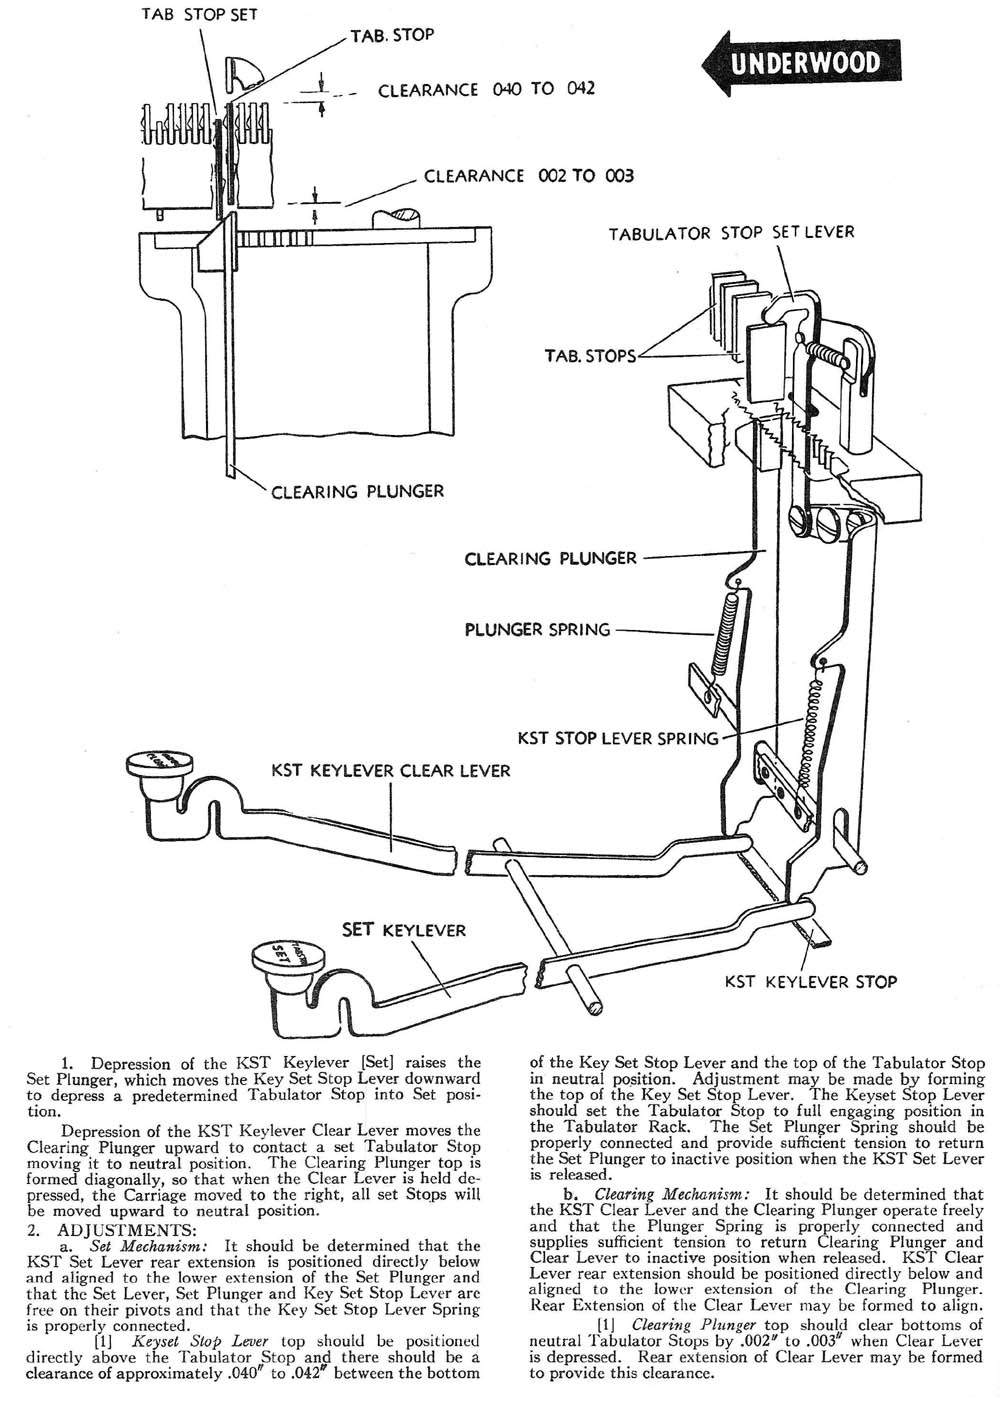 Typewriter Manuals Auto Electrical Wiring Diagram Well Tec E116997 Gallery